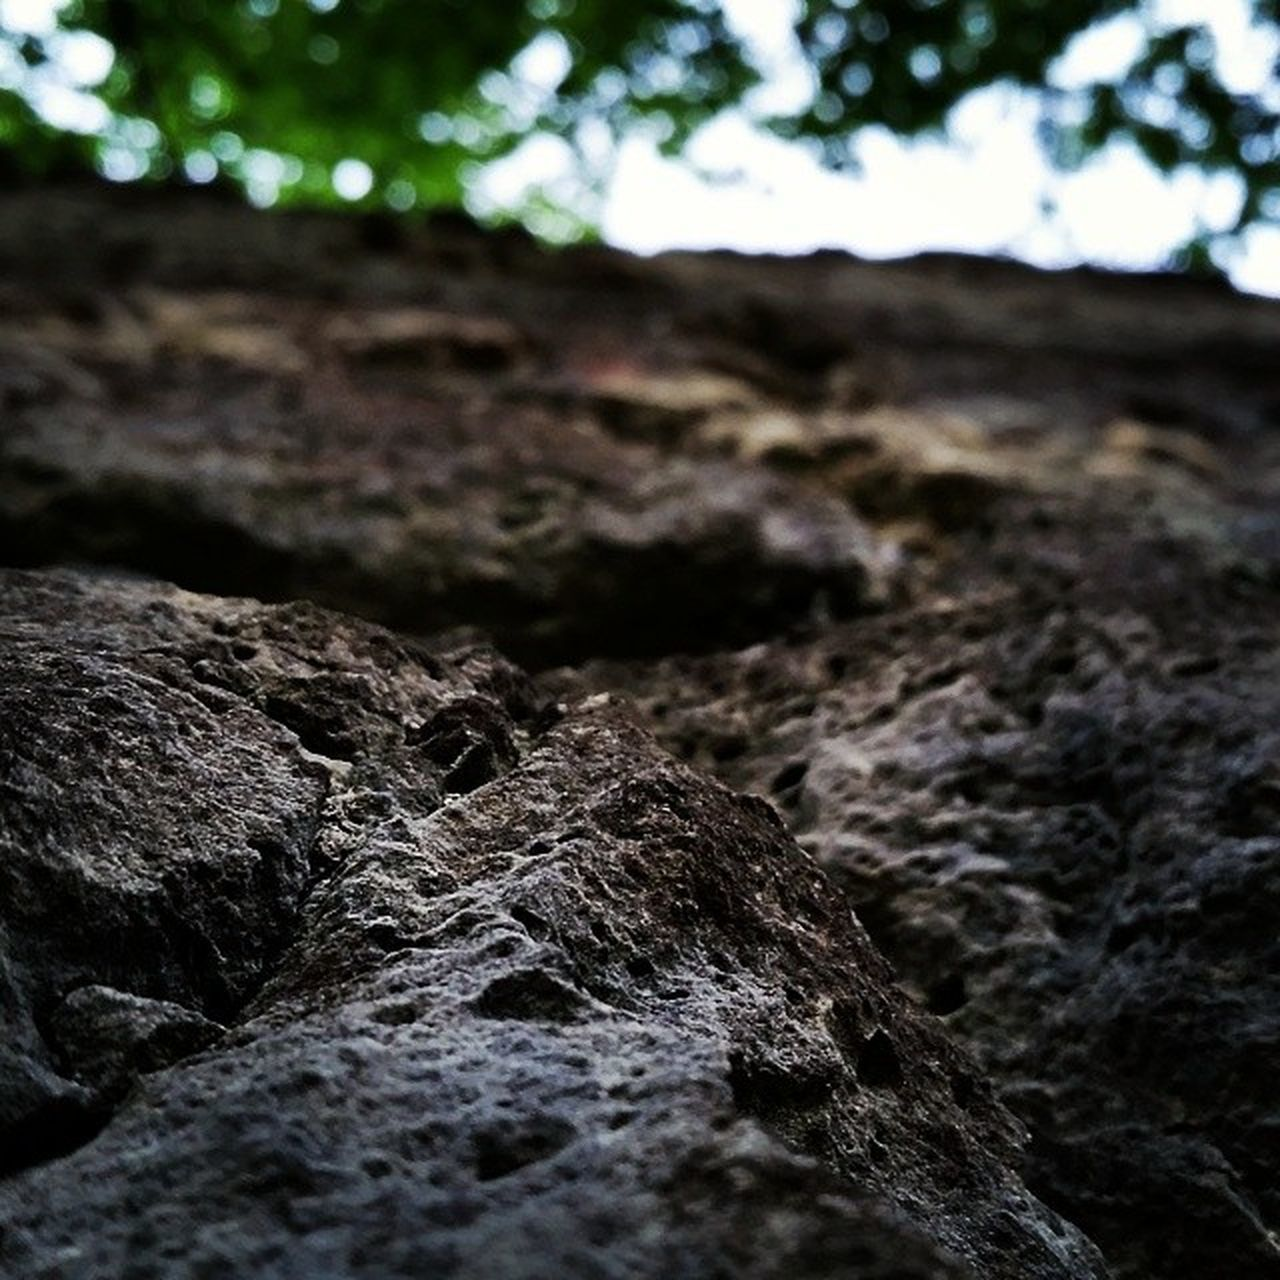 rough, nature, outdoors, no people, close-up, day, focus on foreground, textured, rock - object, beauty in nature, tree, animal themes